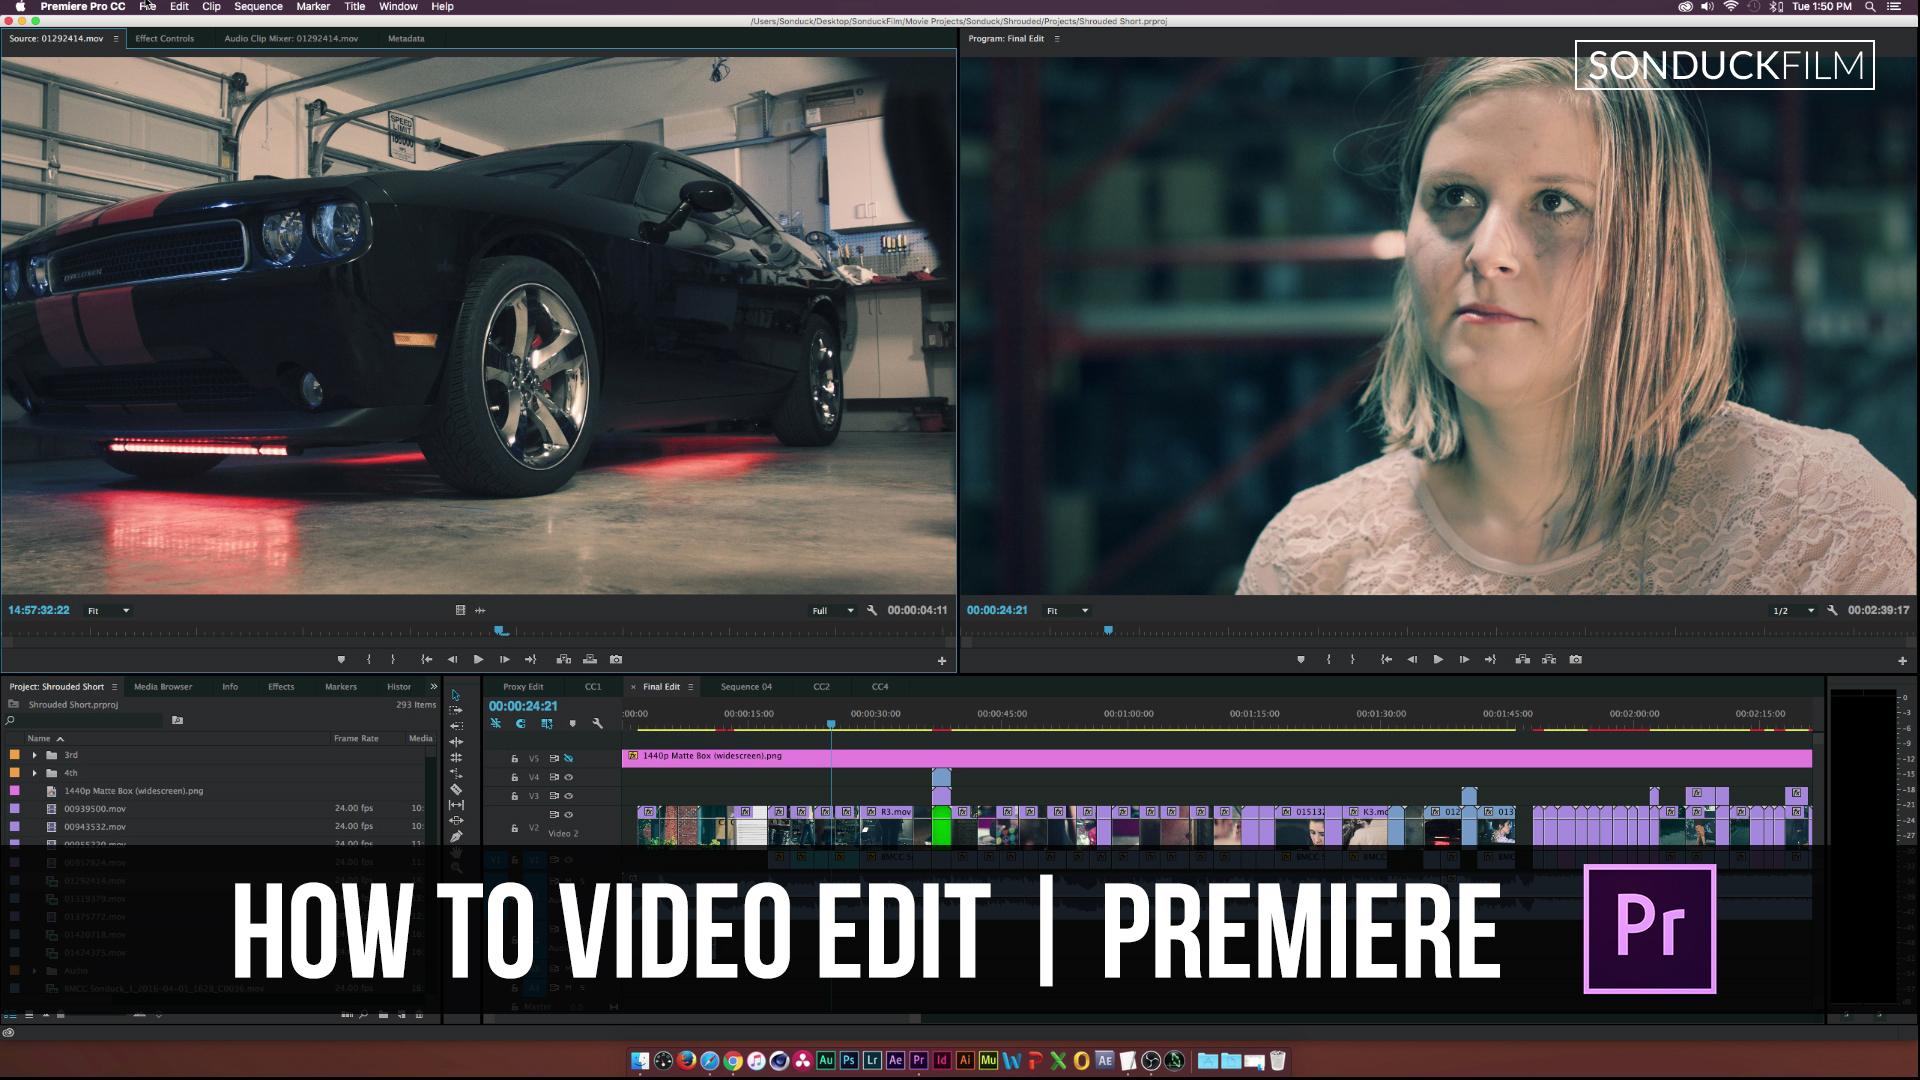 Adobe Premiere Cc: How To Edit With Adobe Premiere Sonduckfilm How To Edit  Videos With